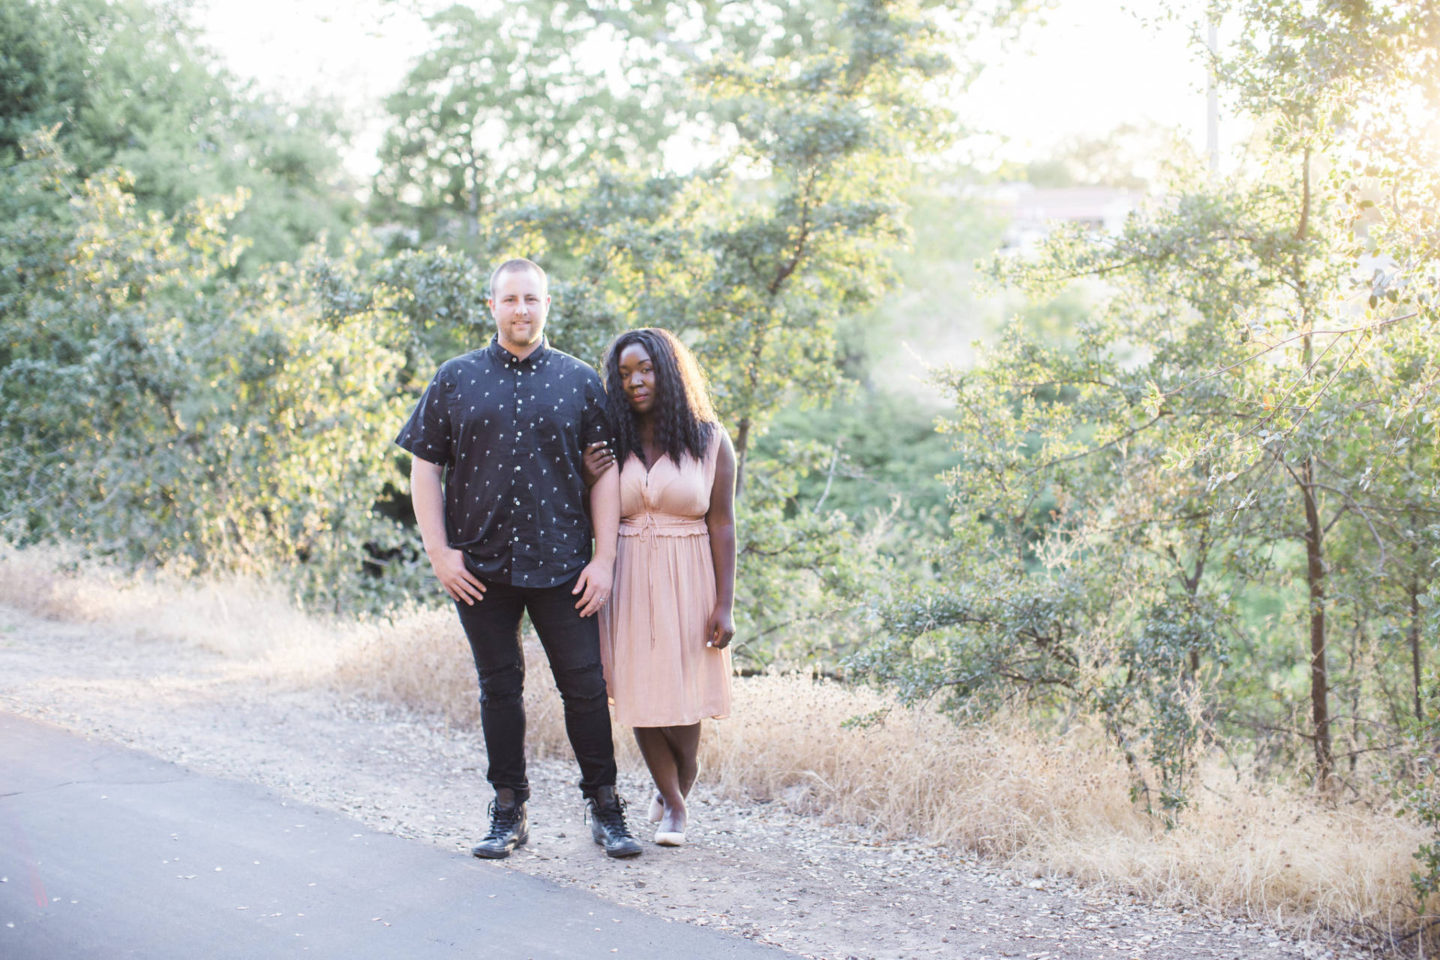 9 Years Married, Eternity To Go: 3 Keys To Marriage Success